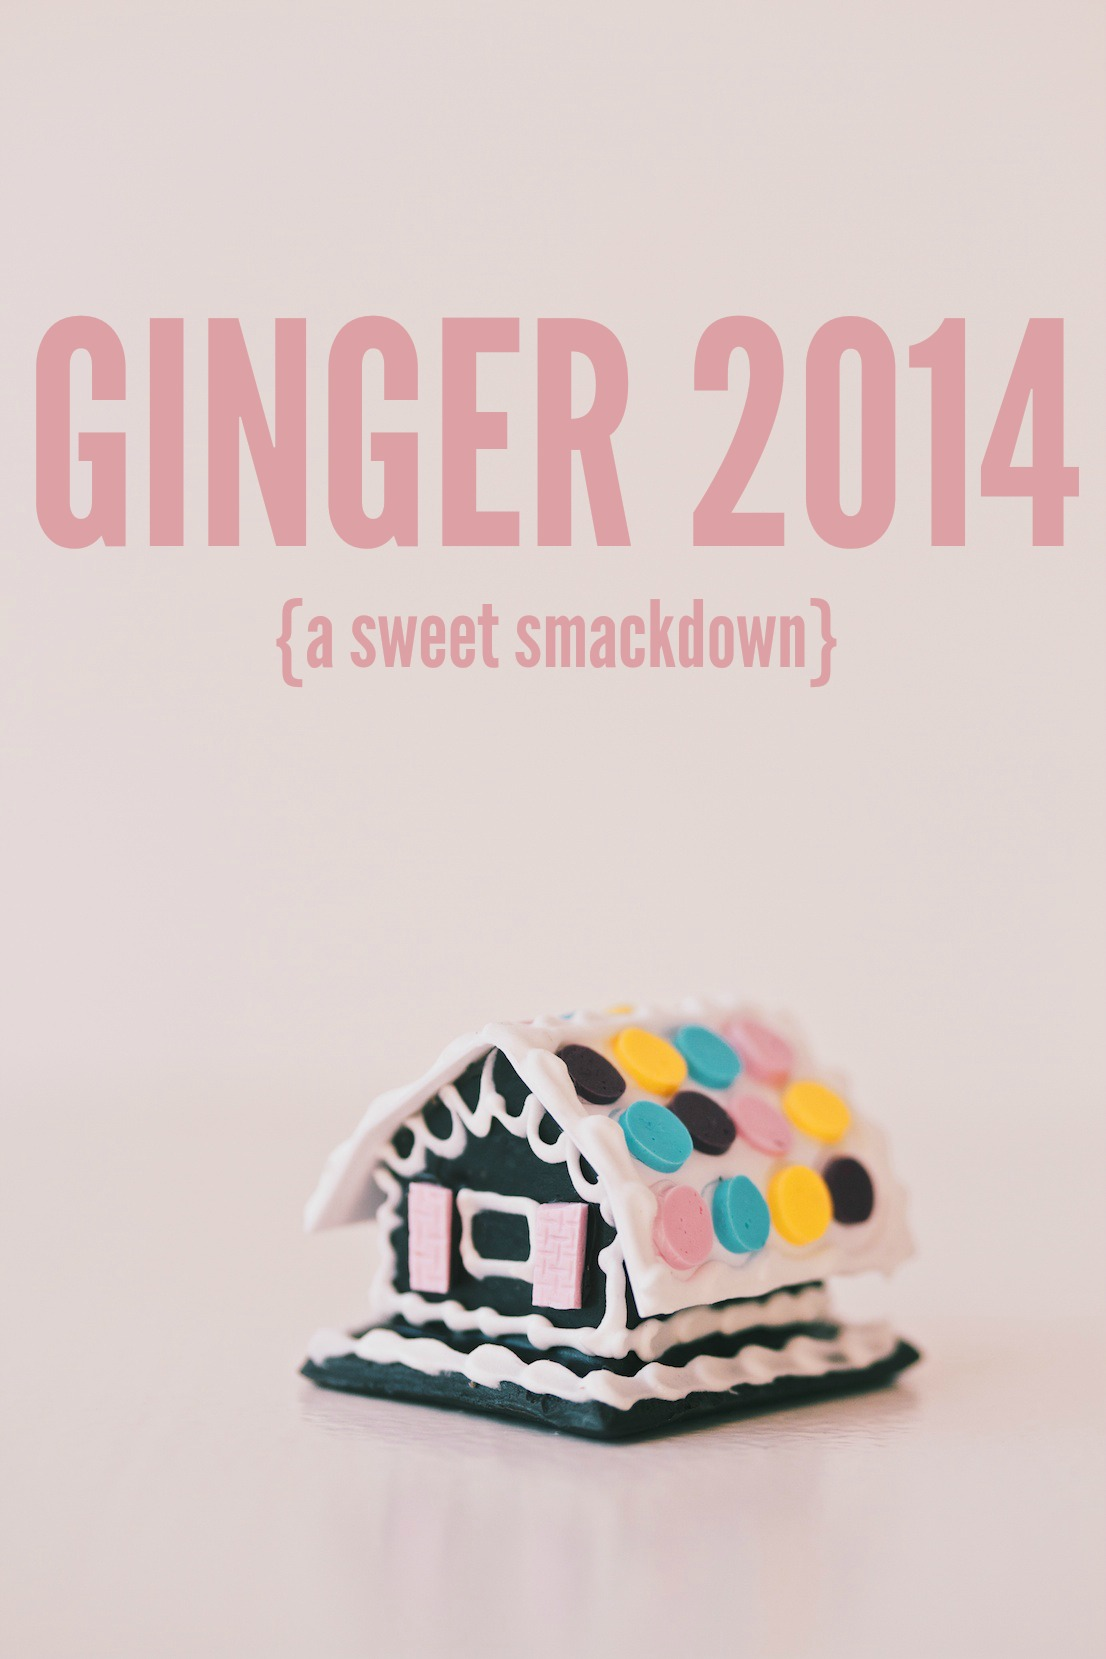 ginger 2014 | movita beaucoup